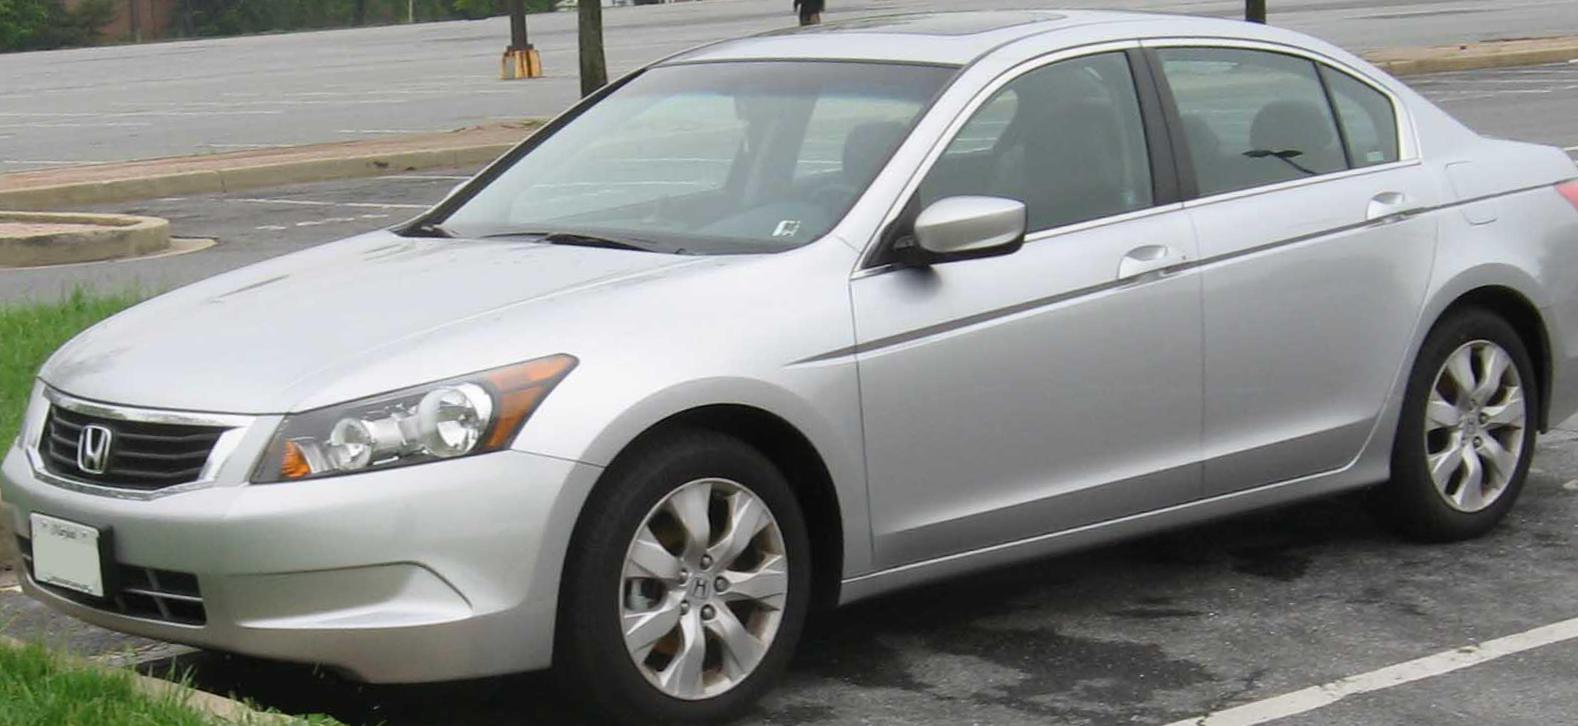 Accord Honda approved sedan